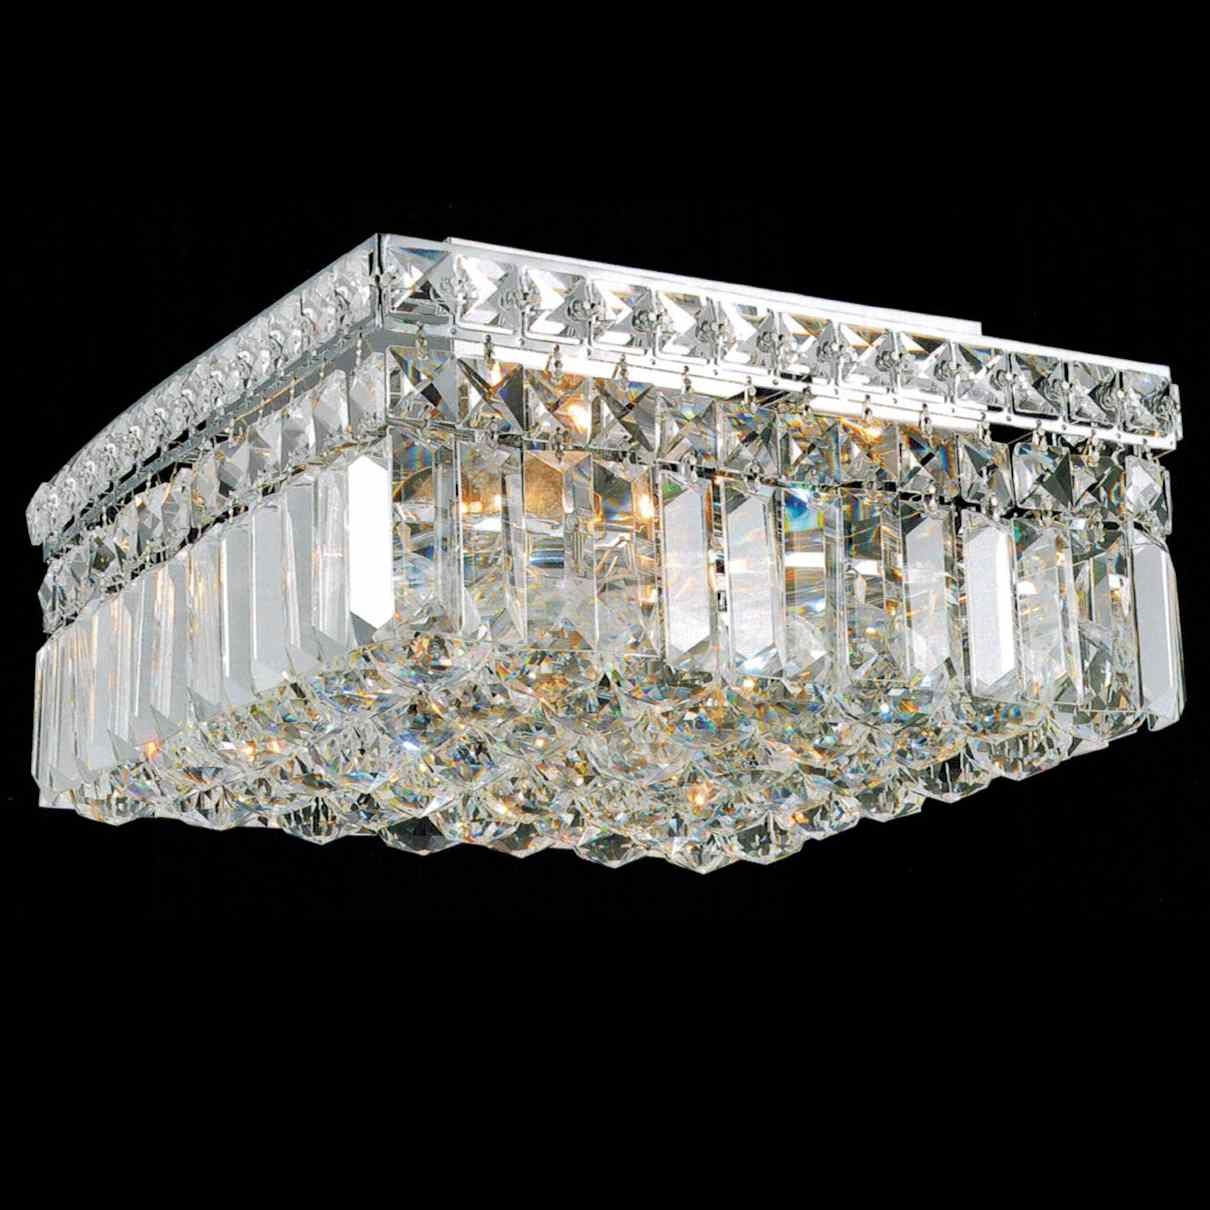 Flush Mount Crystal Chandelier Lighting Throughout 4 Light Chrome Crystal Chandeliers (View 15 of 25)